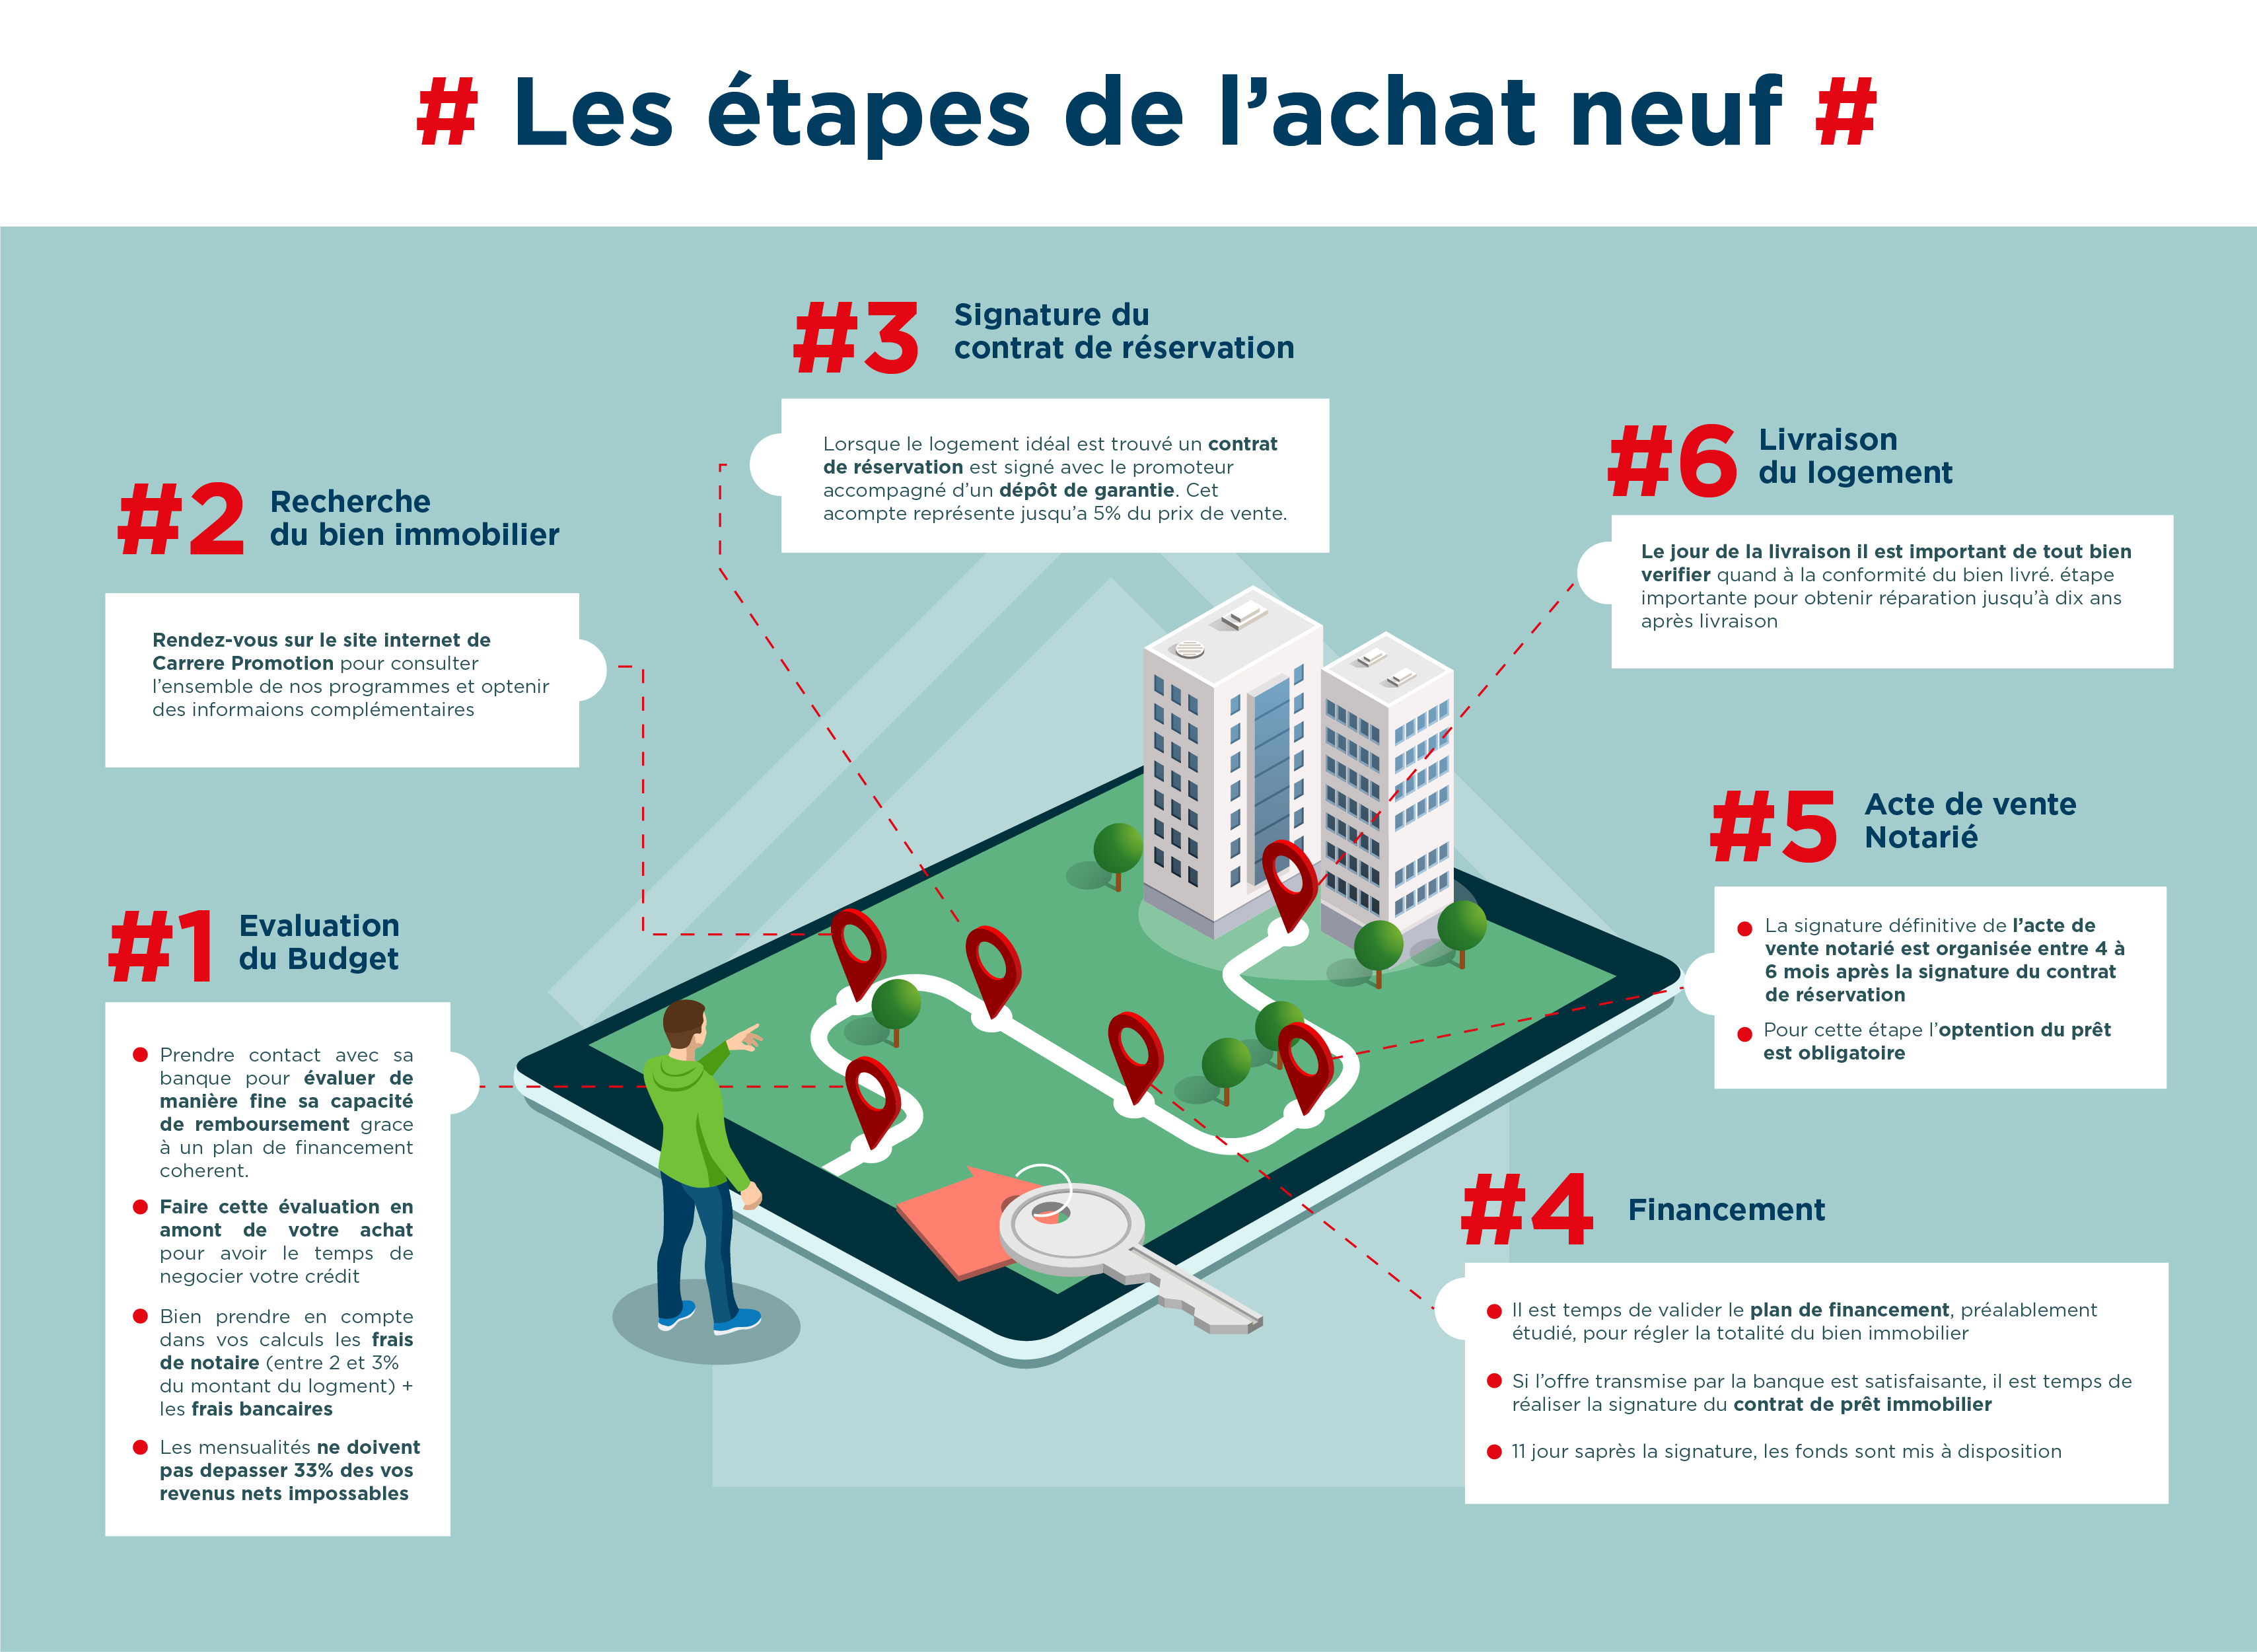 etapes achat neuf-infographie explicative